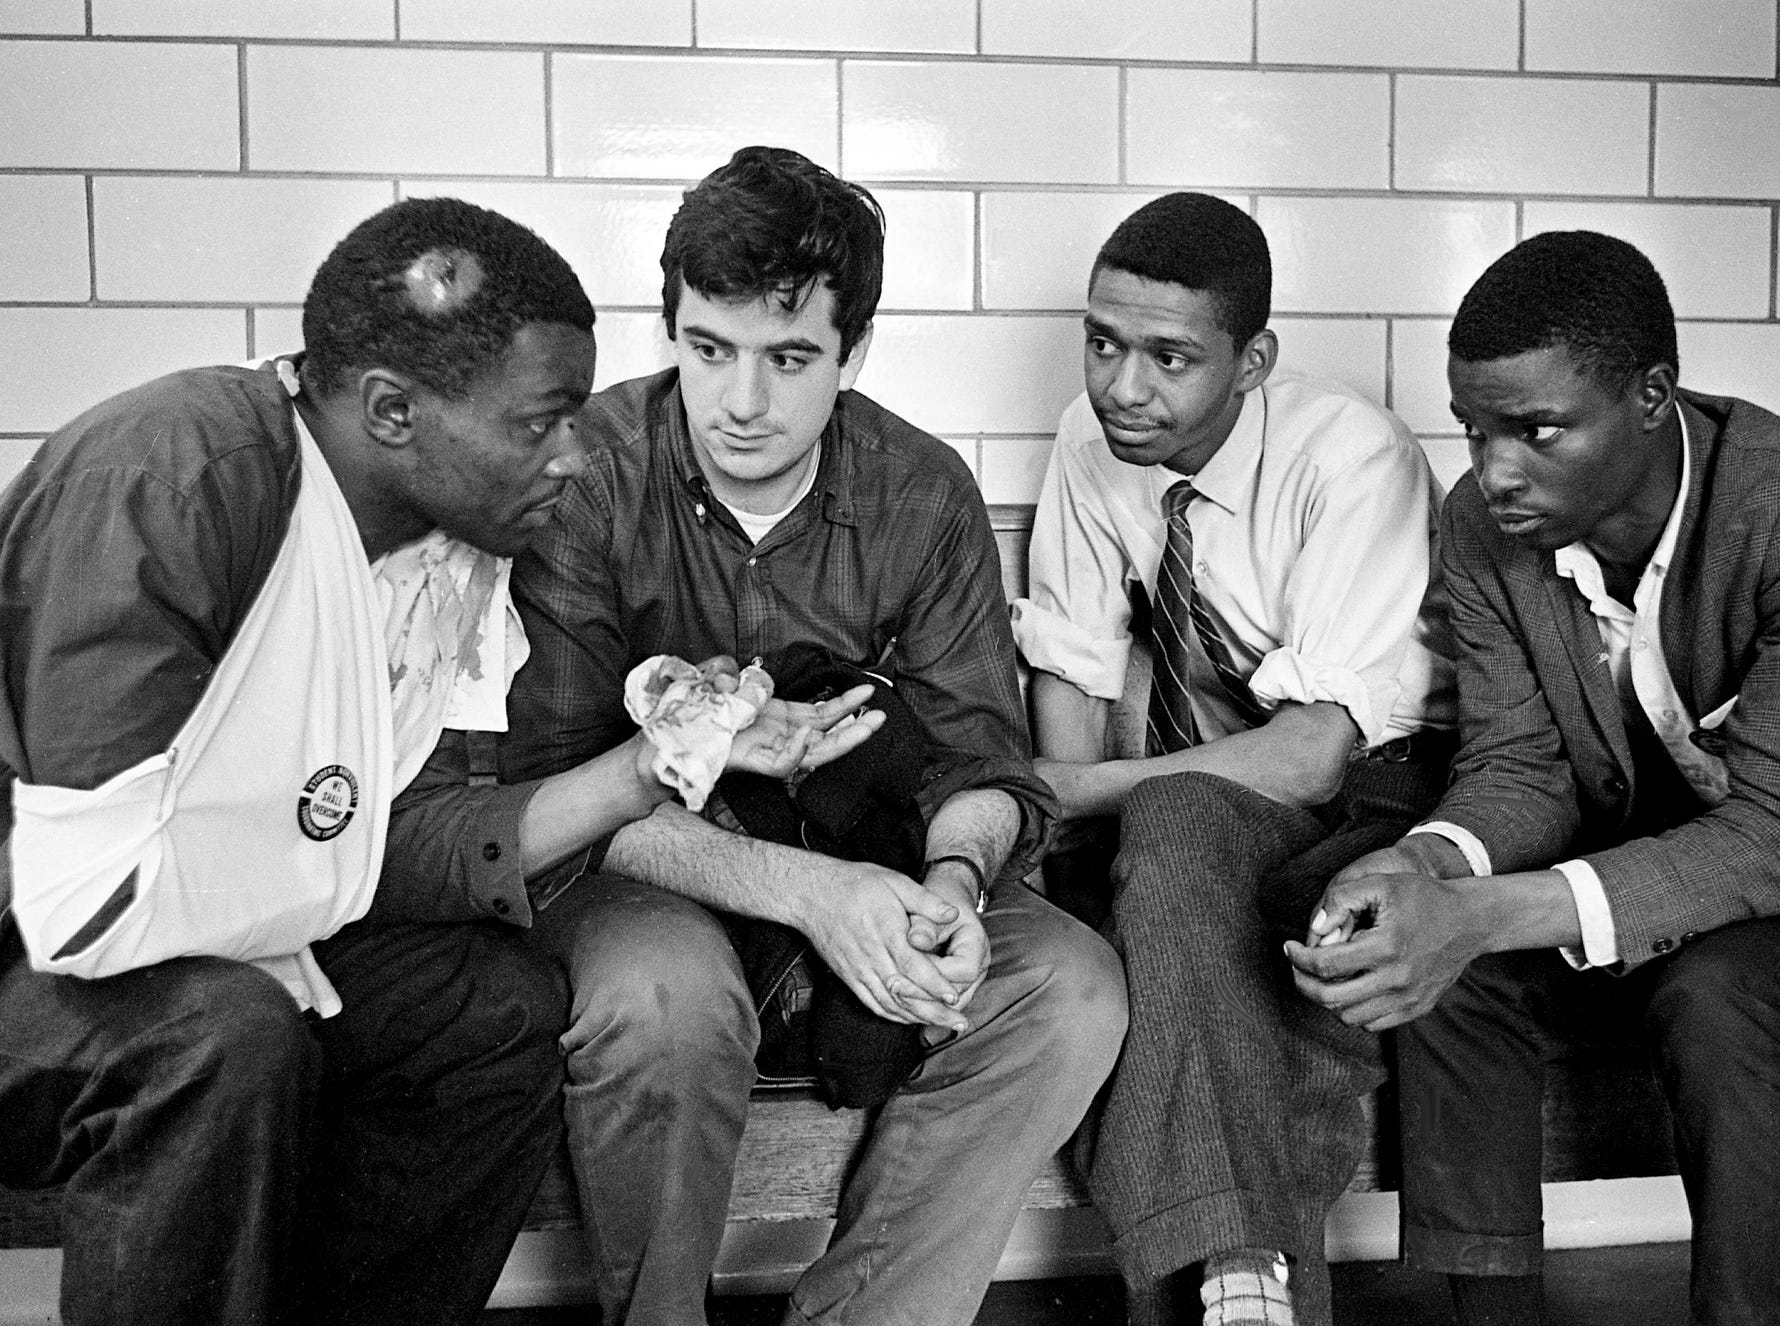 Civil rights demonstrators sit in Metro jail April 27, 1964, as they wait to make bond. They are Lester McKinnie, left, a group leader; Allen Wolfe, a Vanderbilt student; William T. Barbee, a Scarritt student; and Frederick Leonard, a student at Tennessee A&I. McKinnie was subdued by police and was treated for injuries at General Hospital.